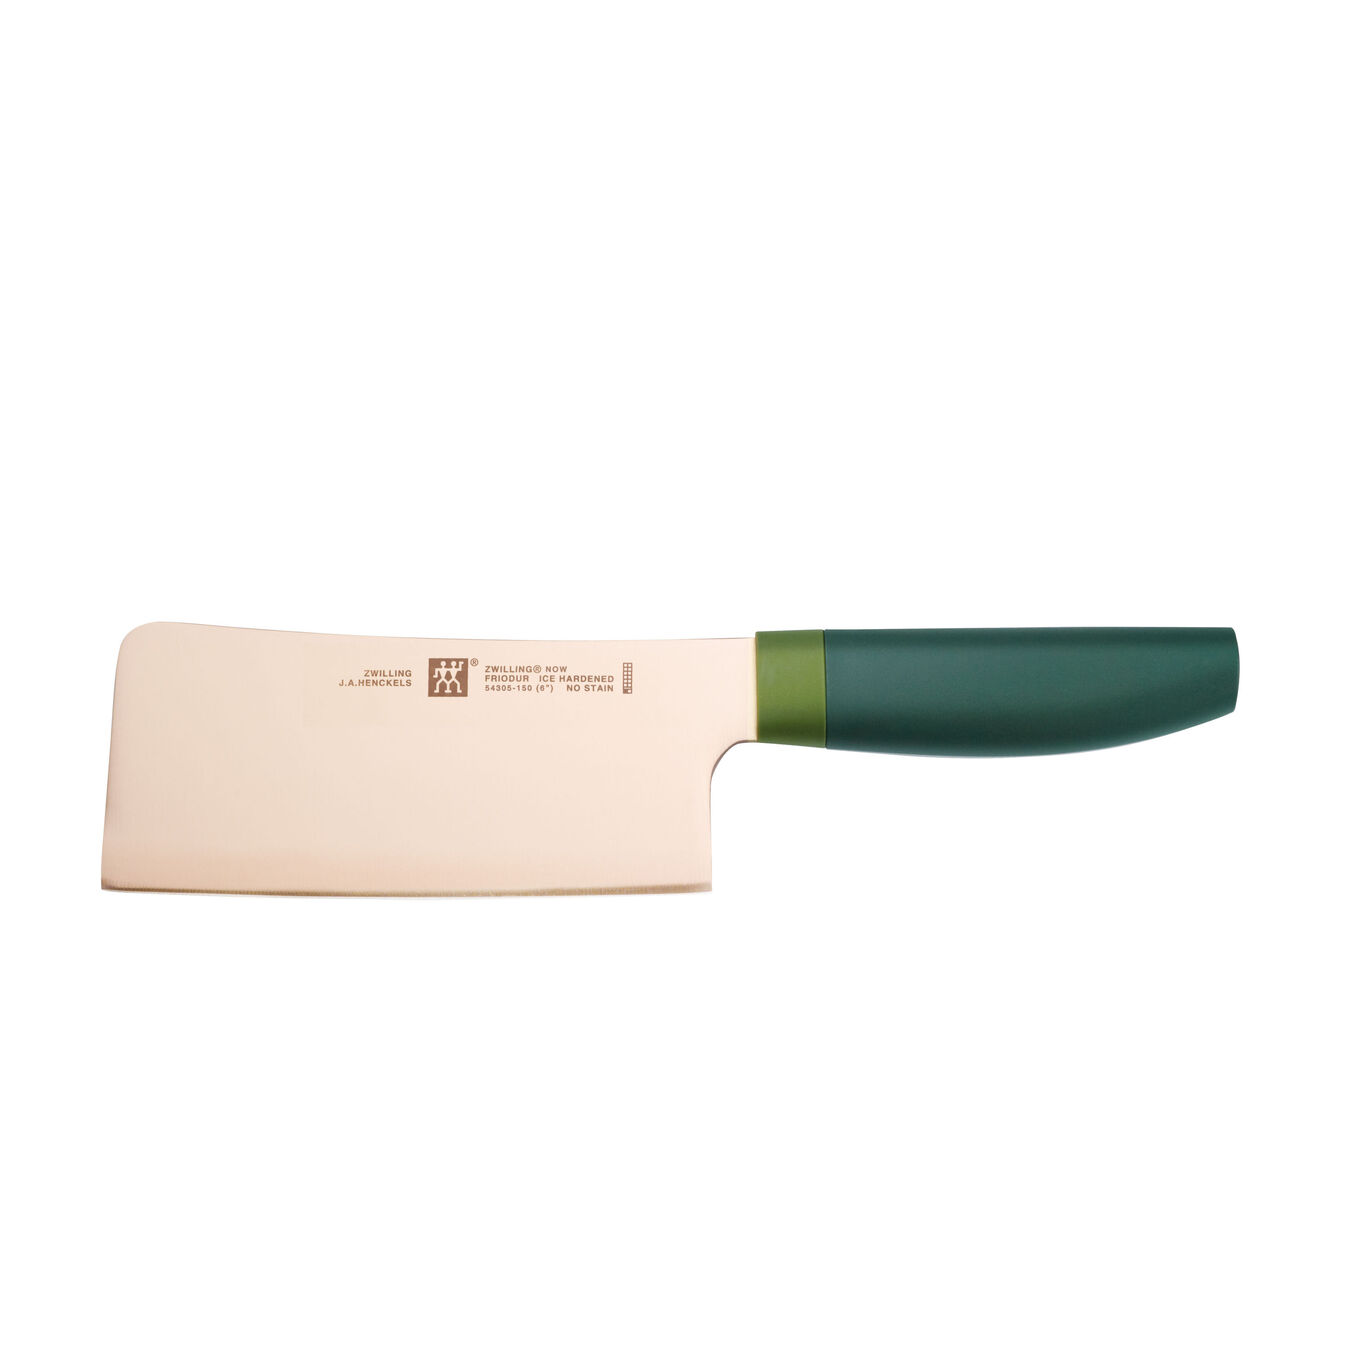 6 inch Cleaver,,large 1